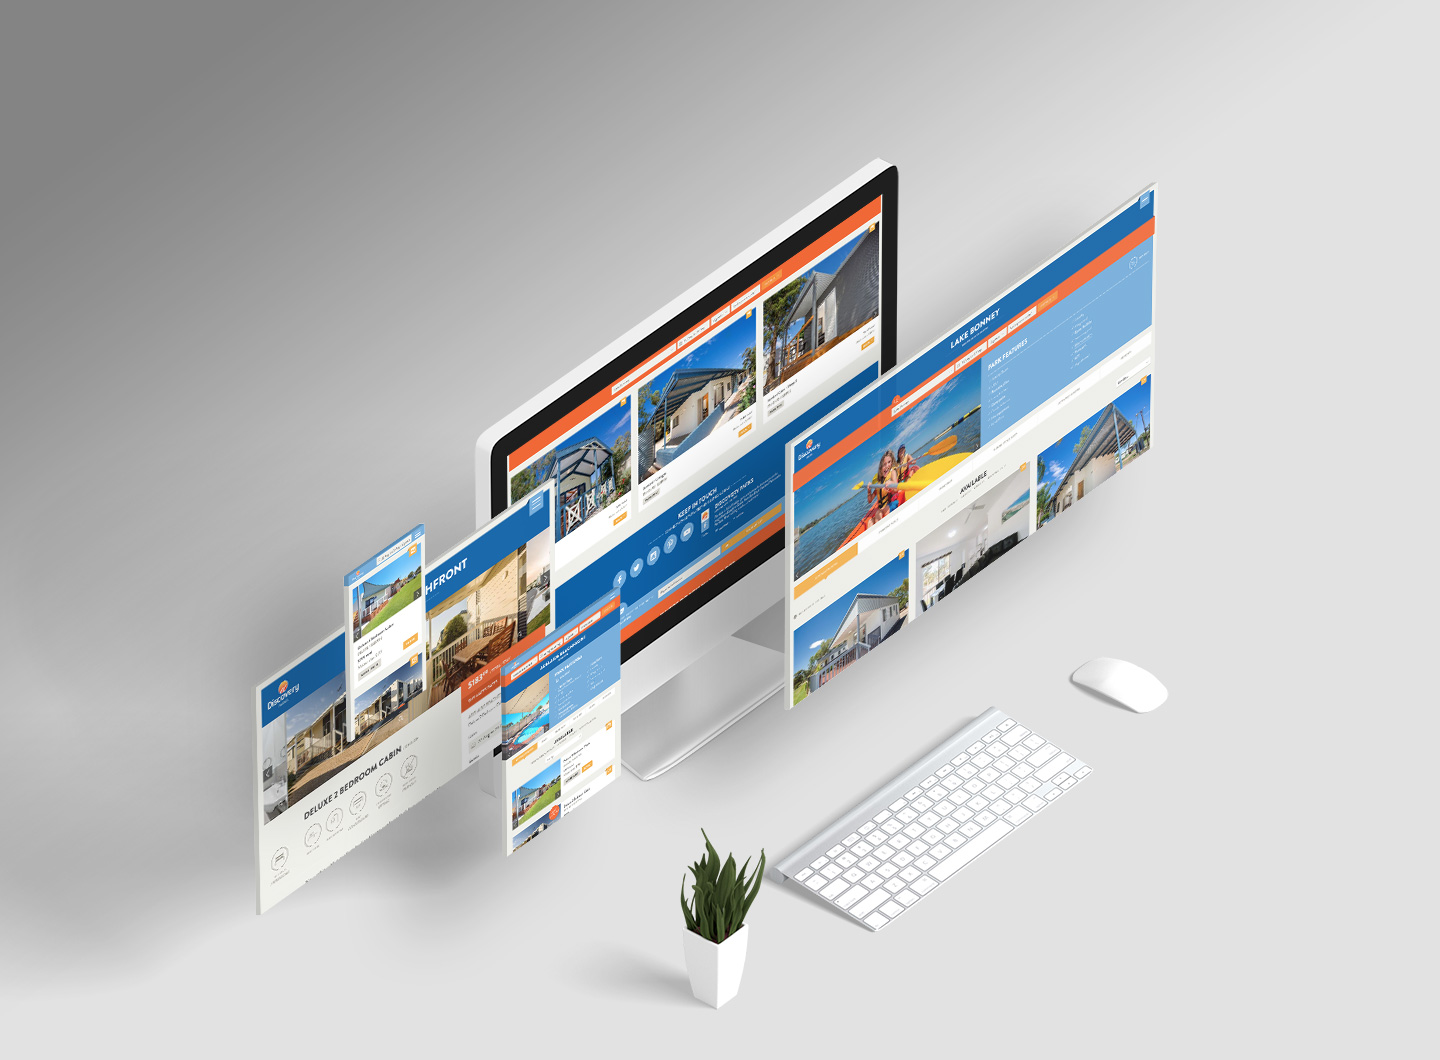 A responsive website design spread for Discovery Parks showing different devices